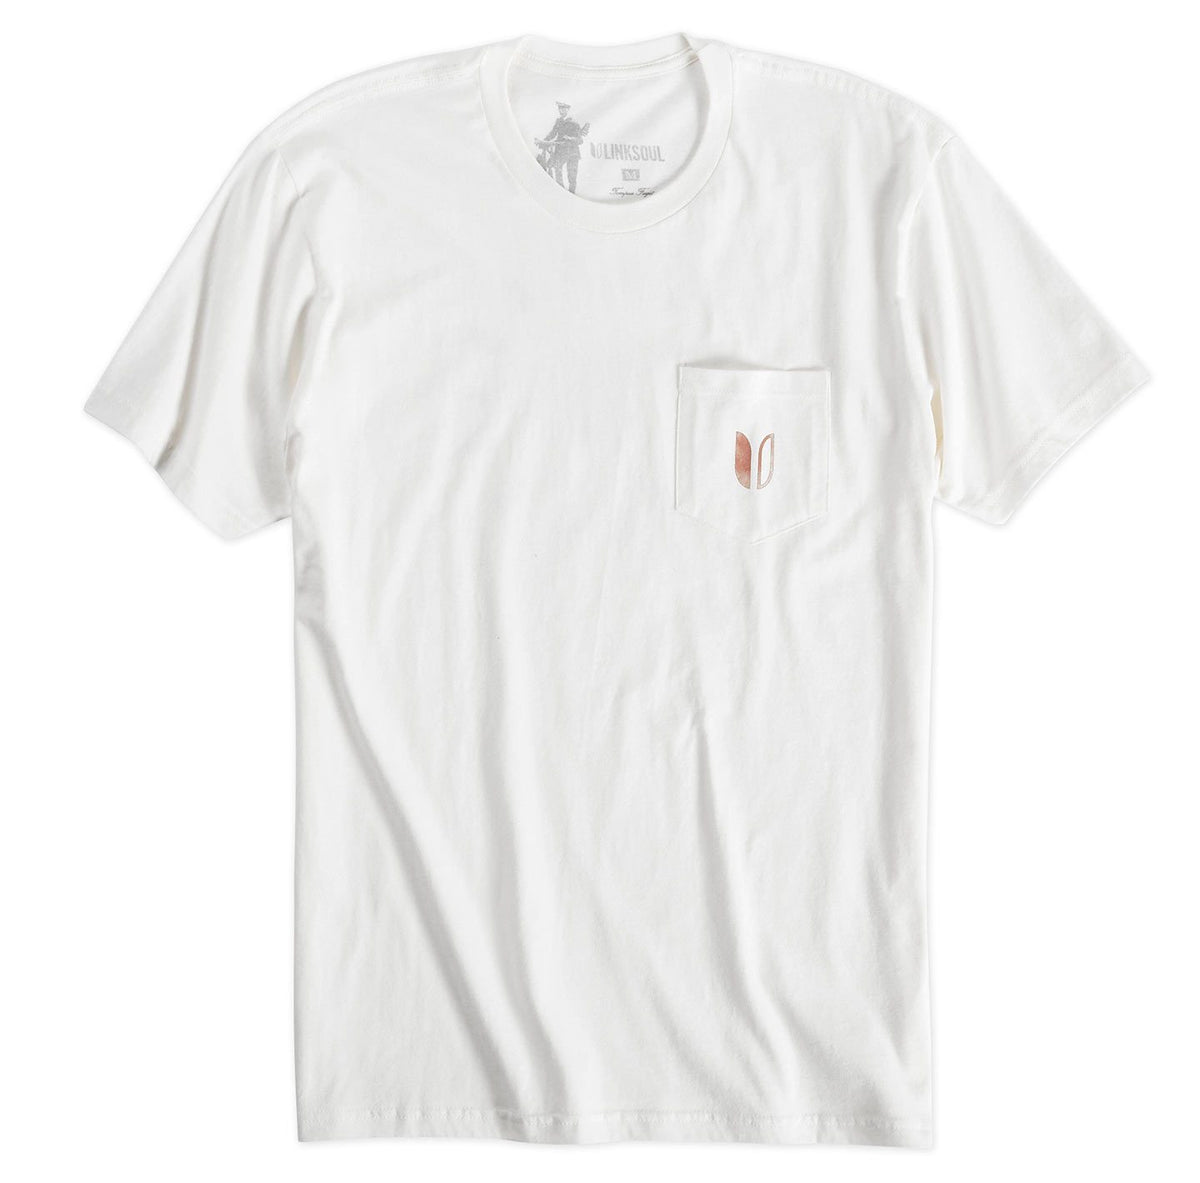 The Pocket Baja Tee